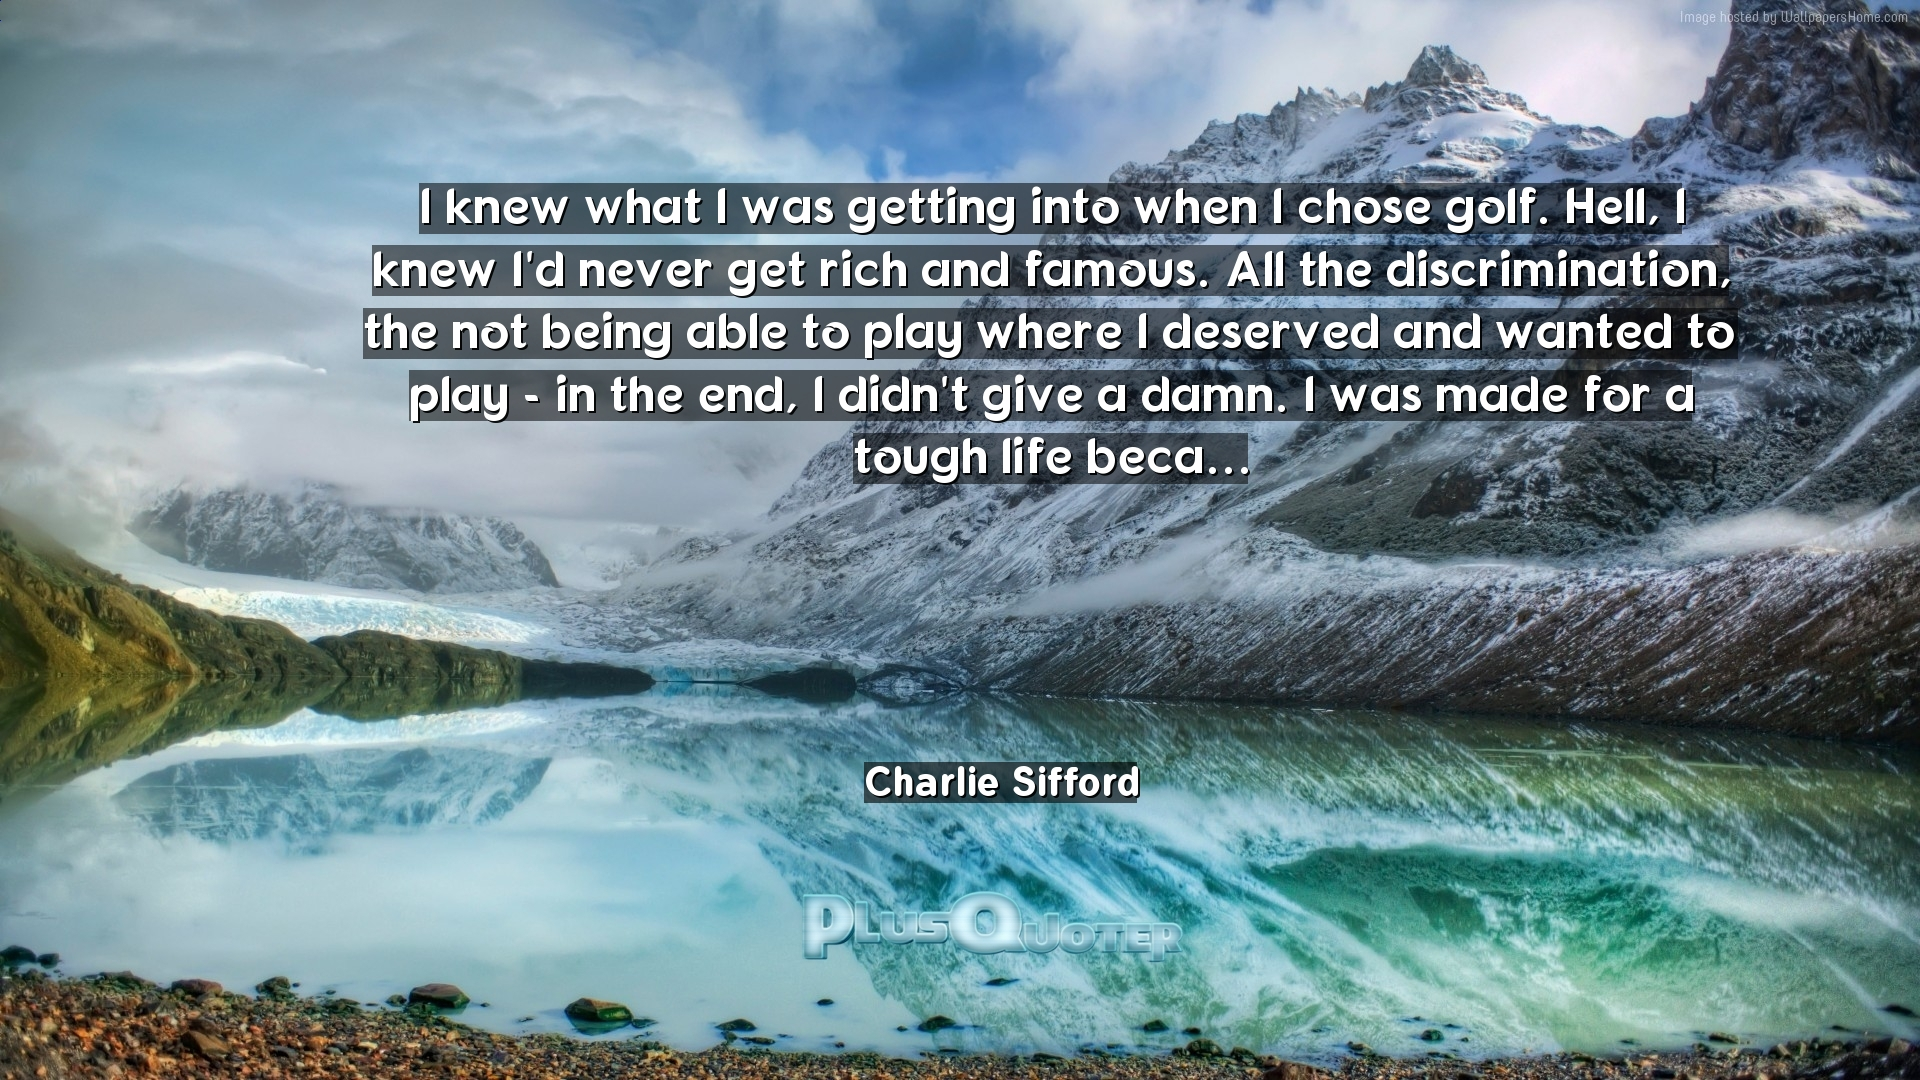 Inspirational Golf Quotes 15 Famous Golf Quotes About Life